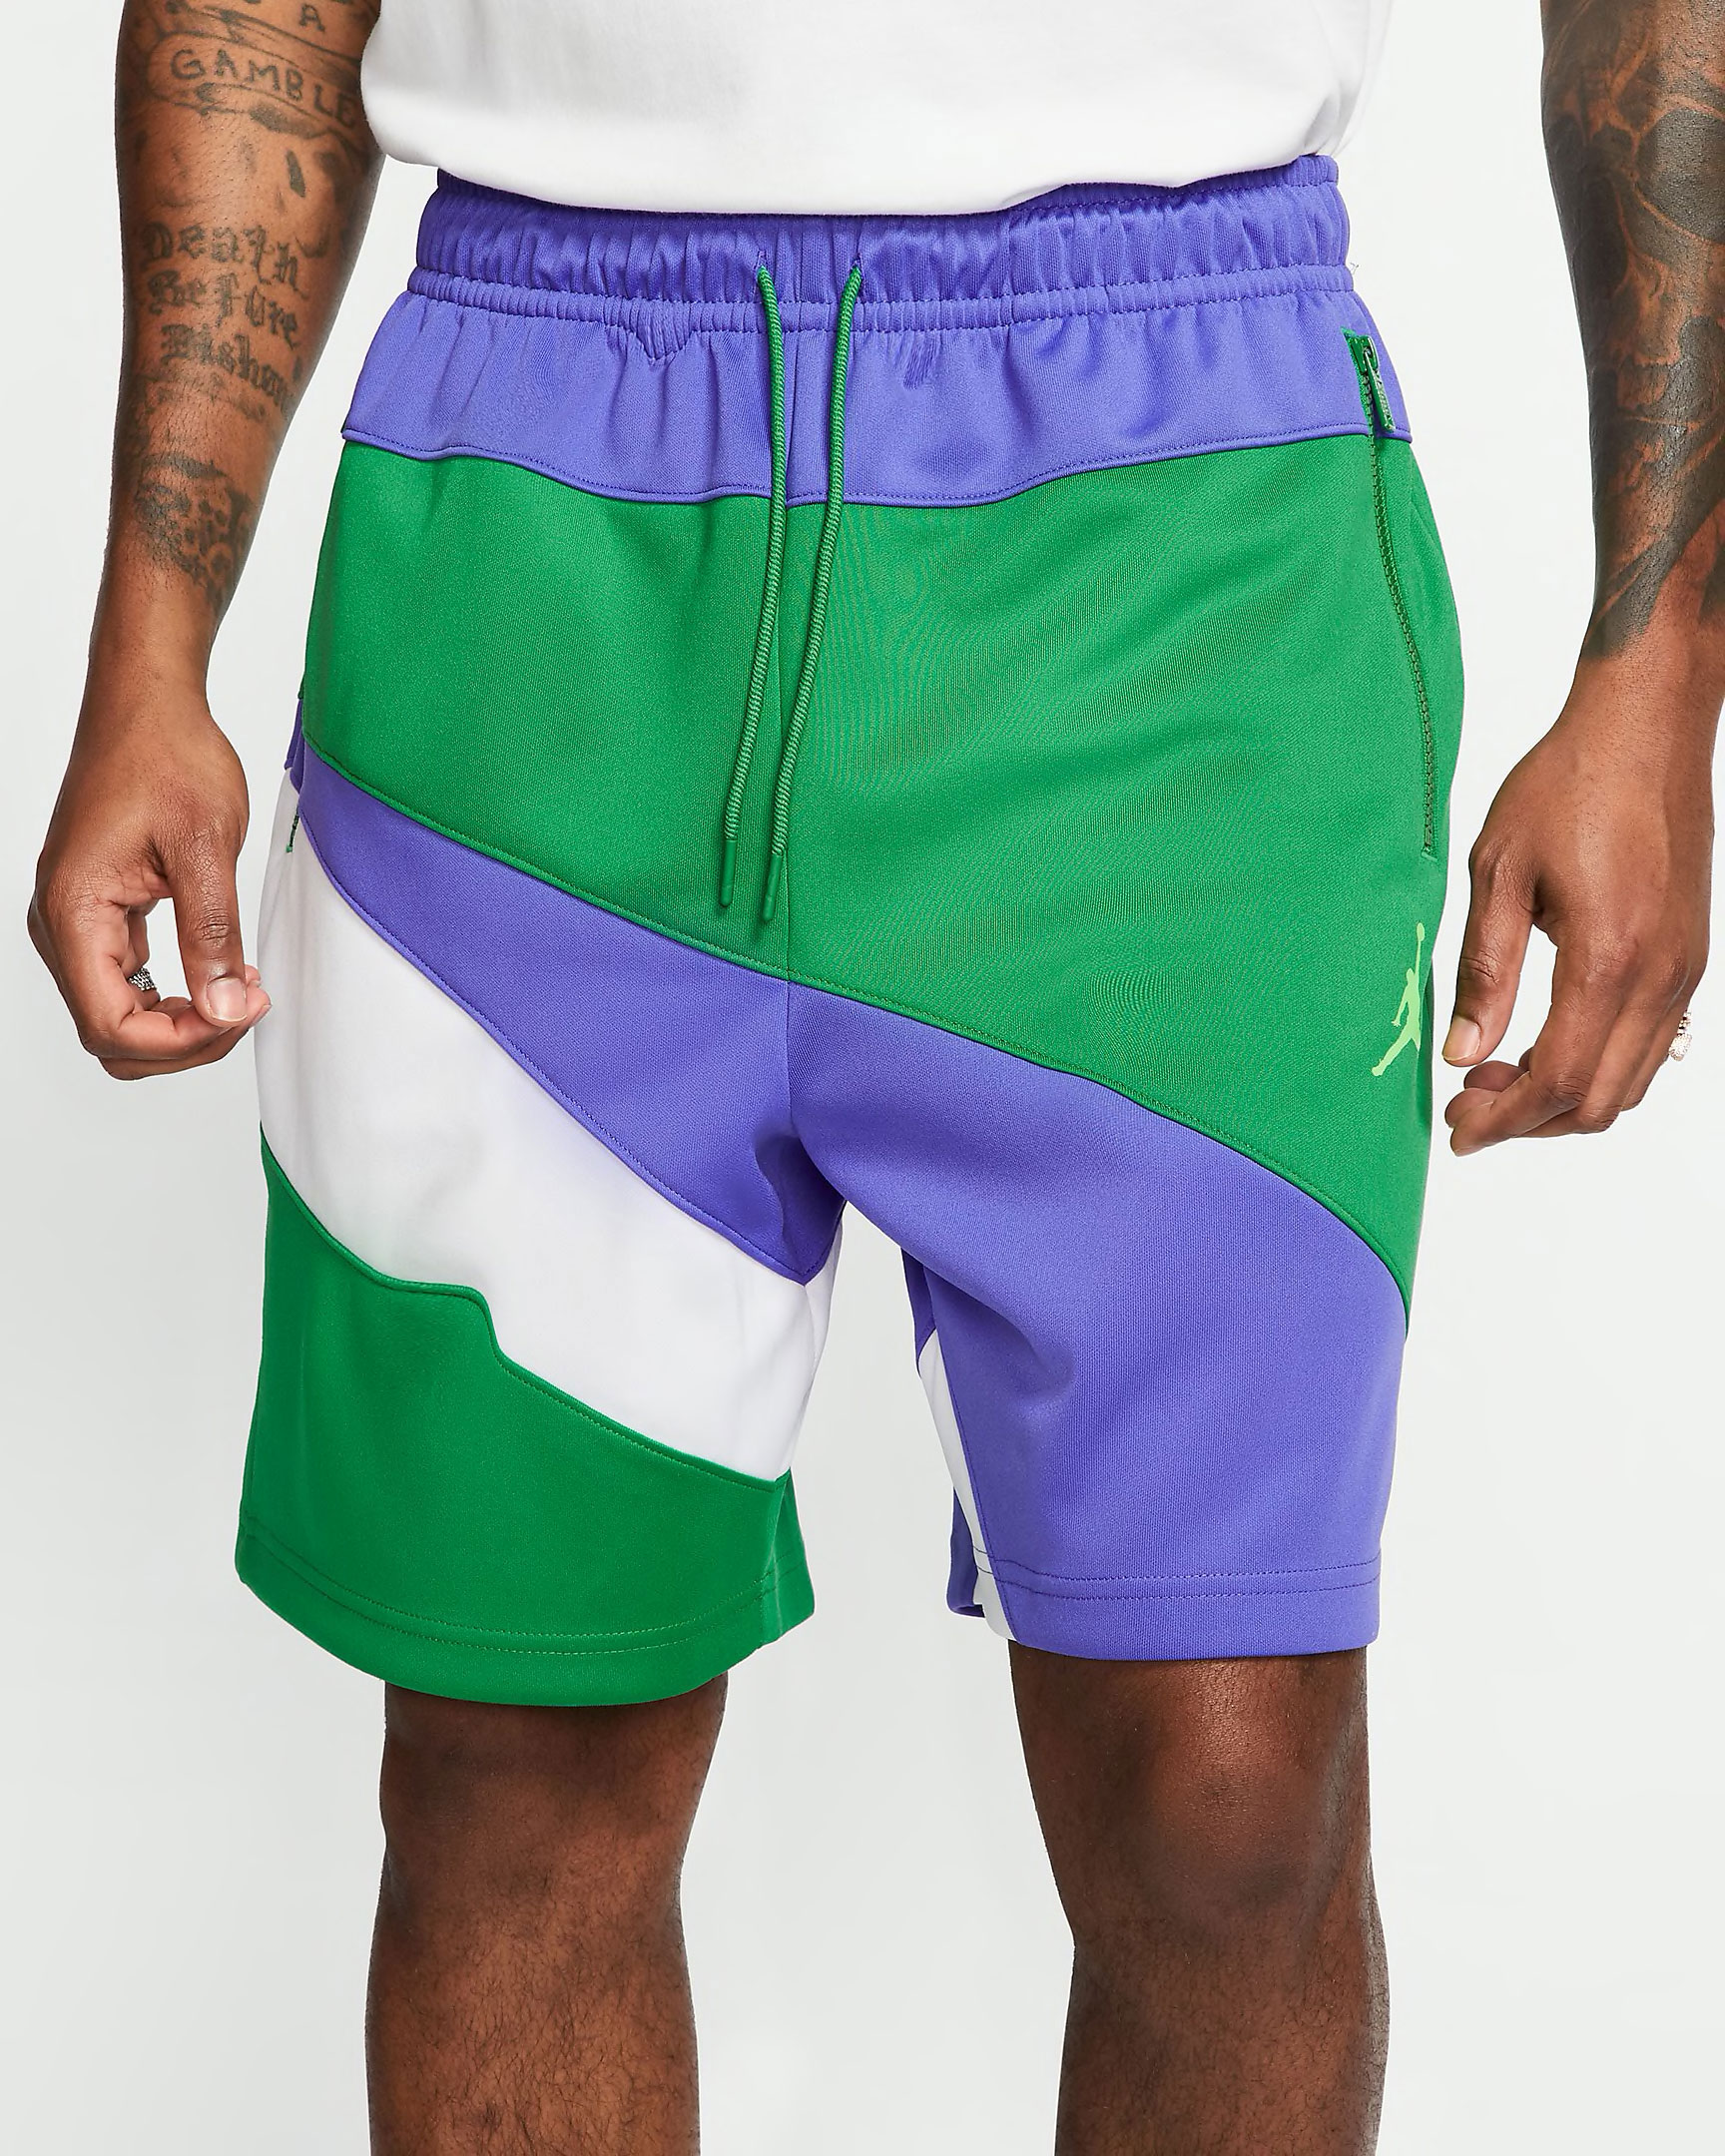 air-jordan-1-mid-nike-hoops-shorts-match-1